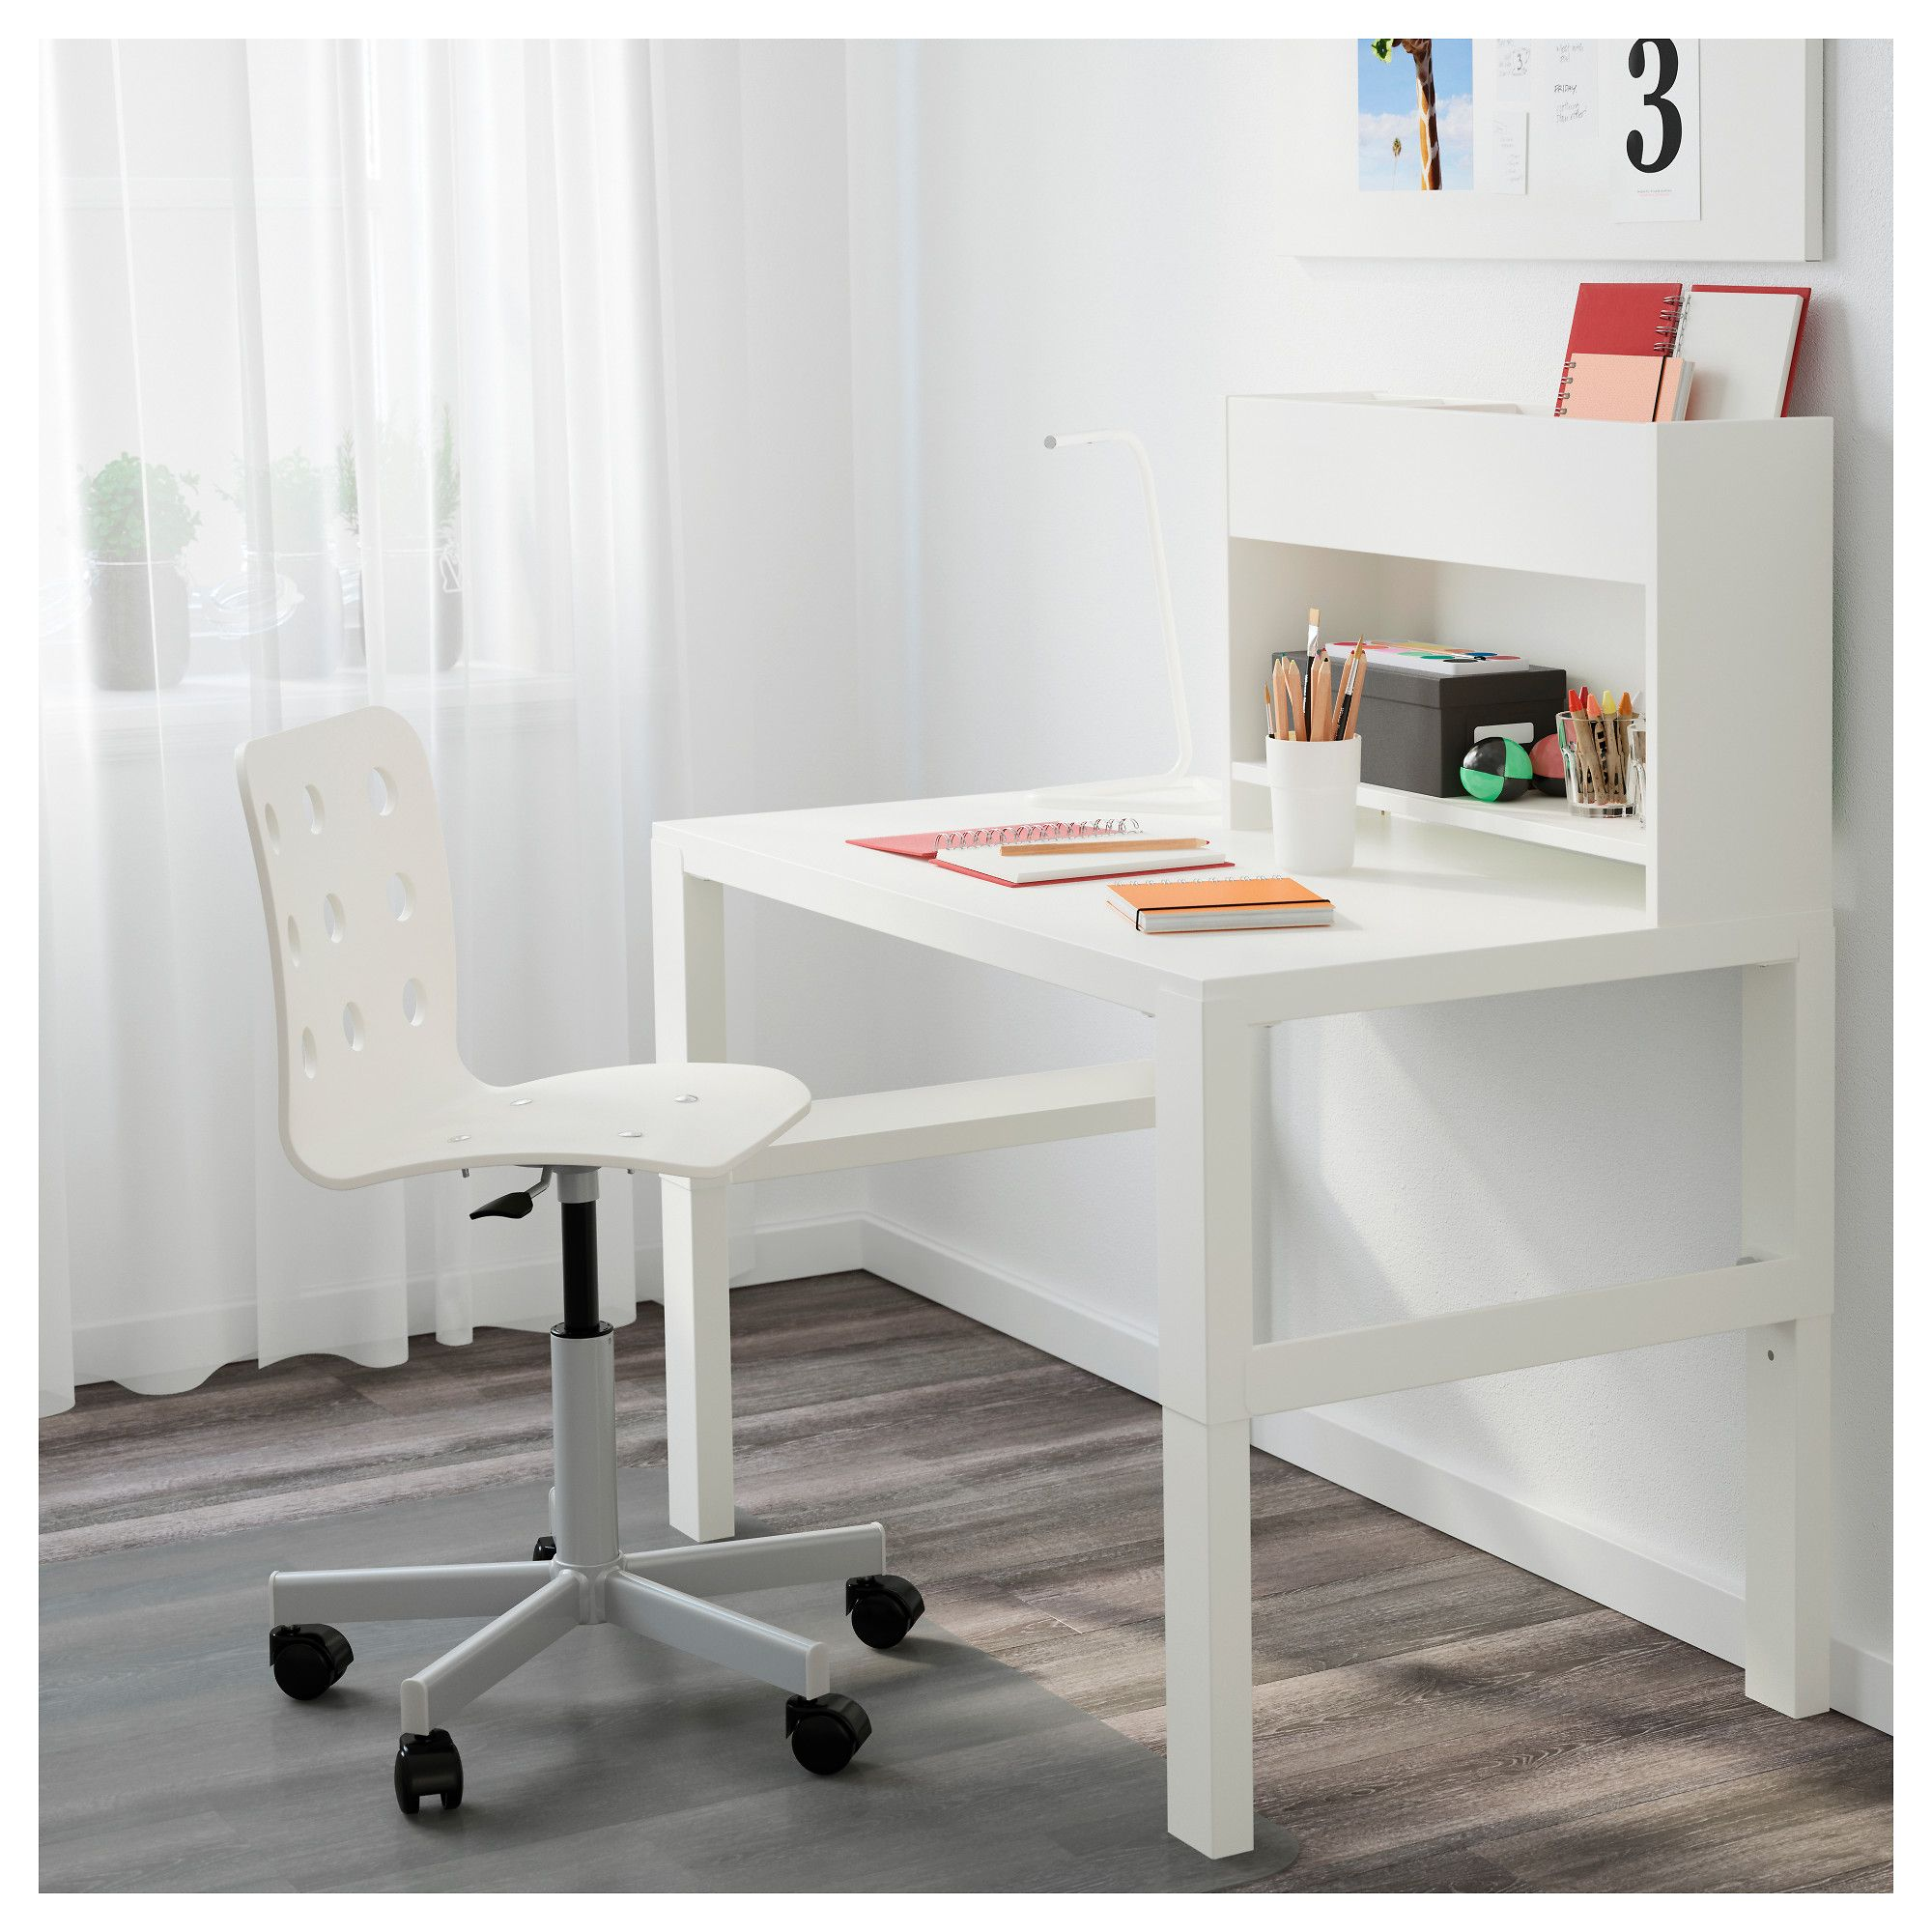 Ikea P Hl Desk With Add On Unit